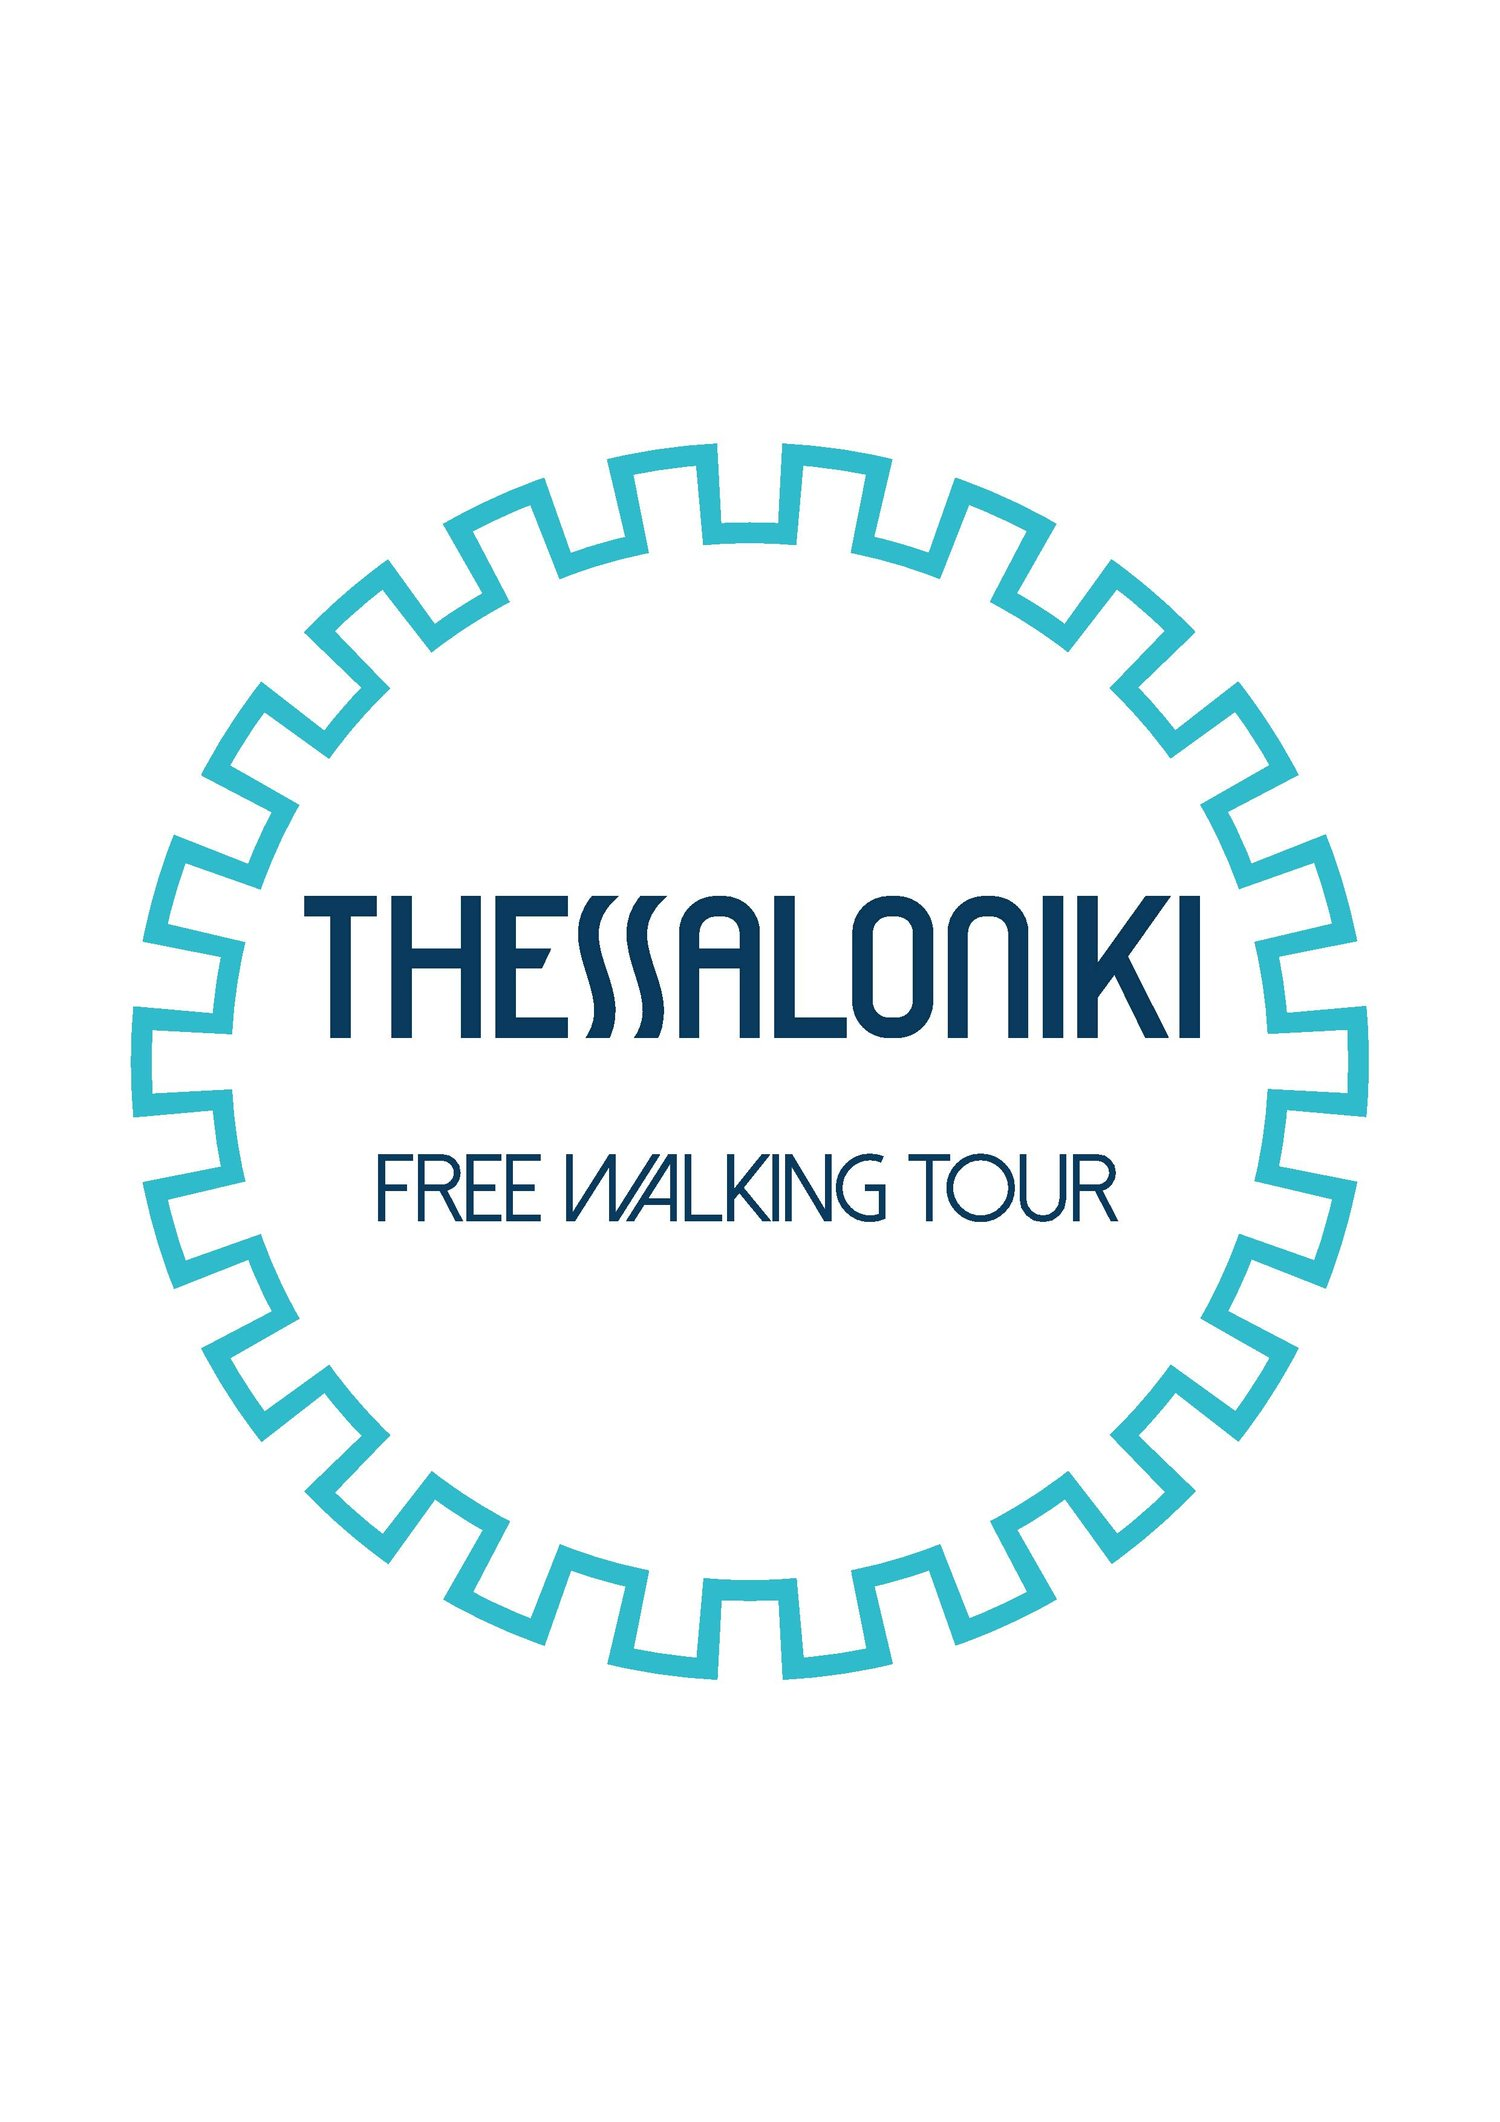 thessaloniki free walking tours